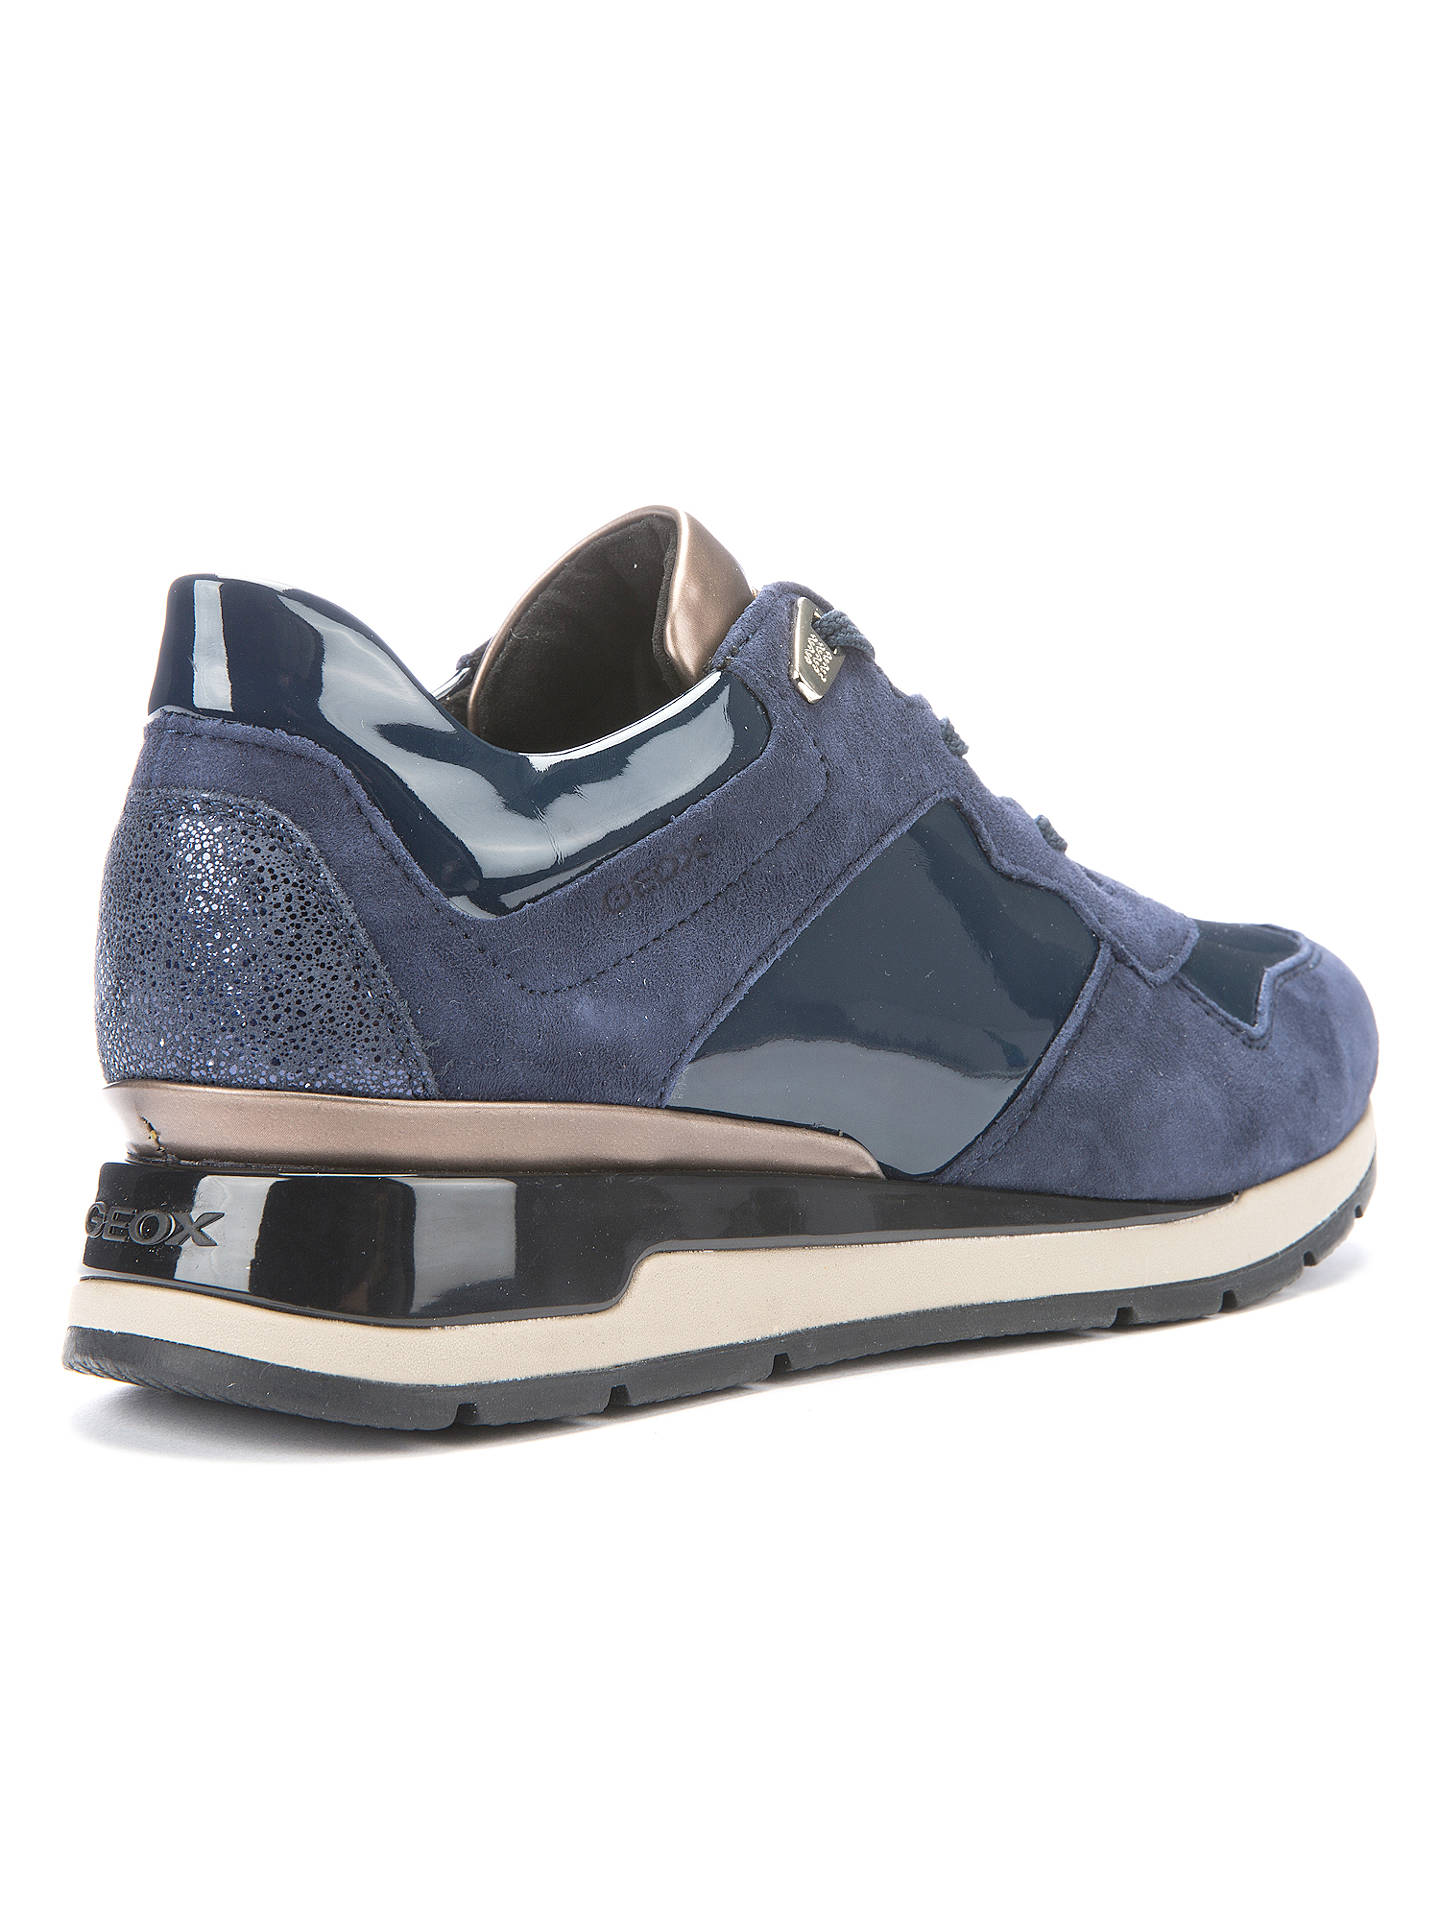 de15e201b21 ... Buy Geox Shahira Lace Up Trainers, Navy, 4 Online at johnlewis.com